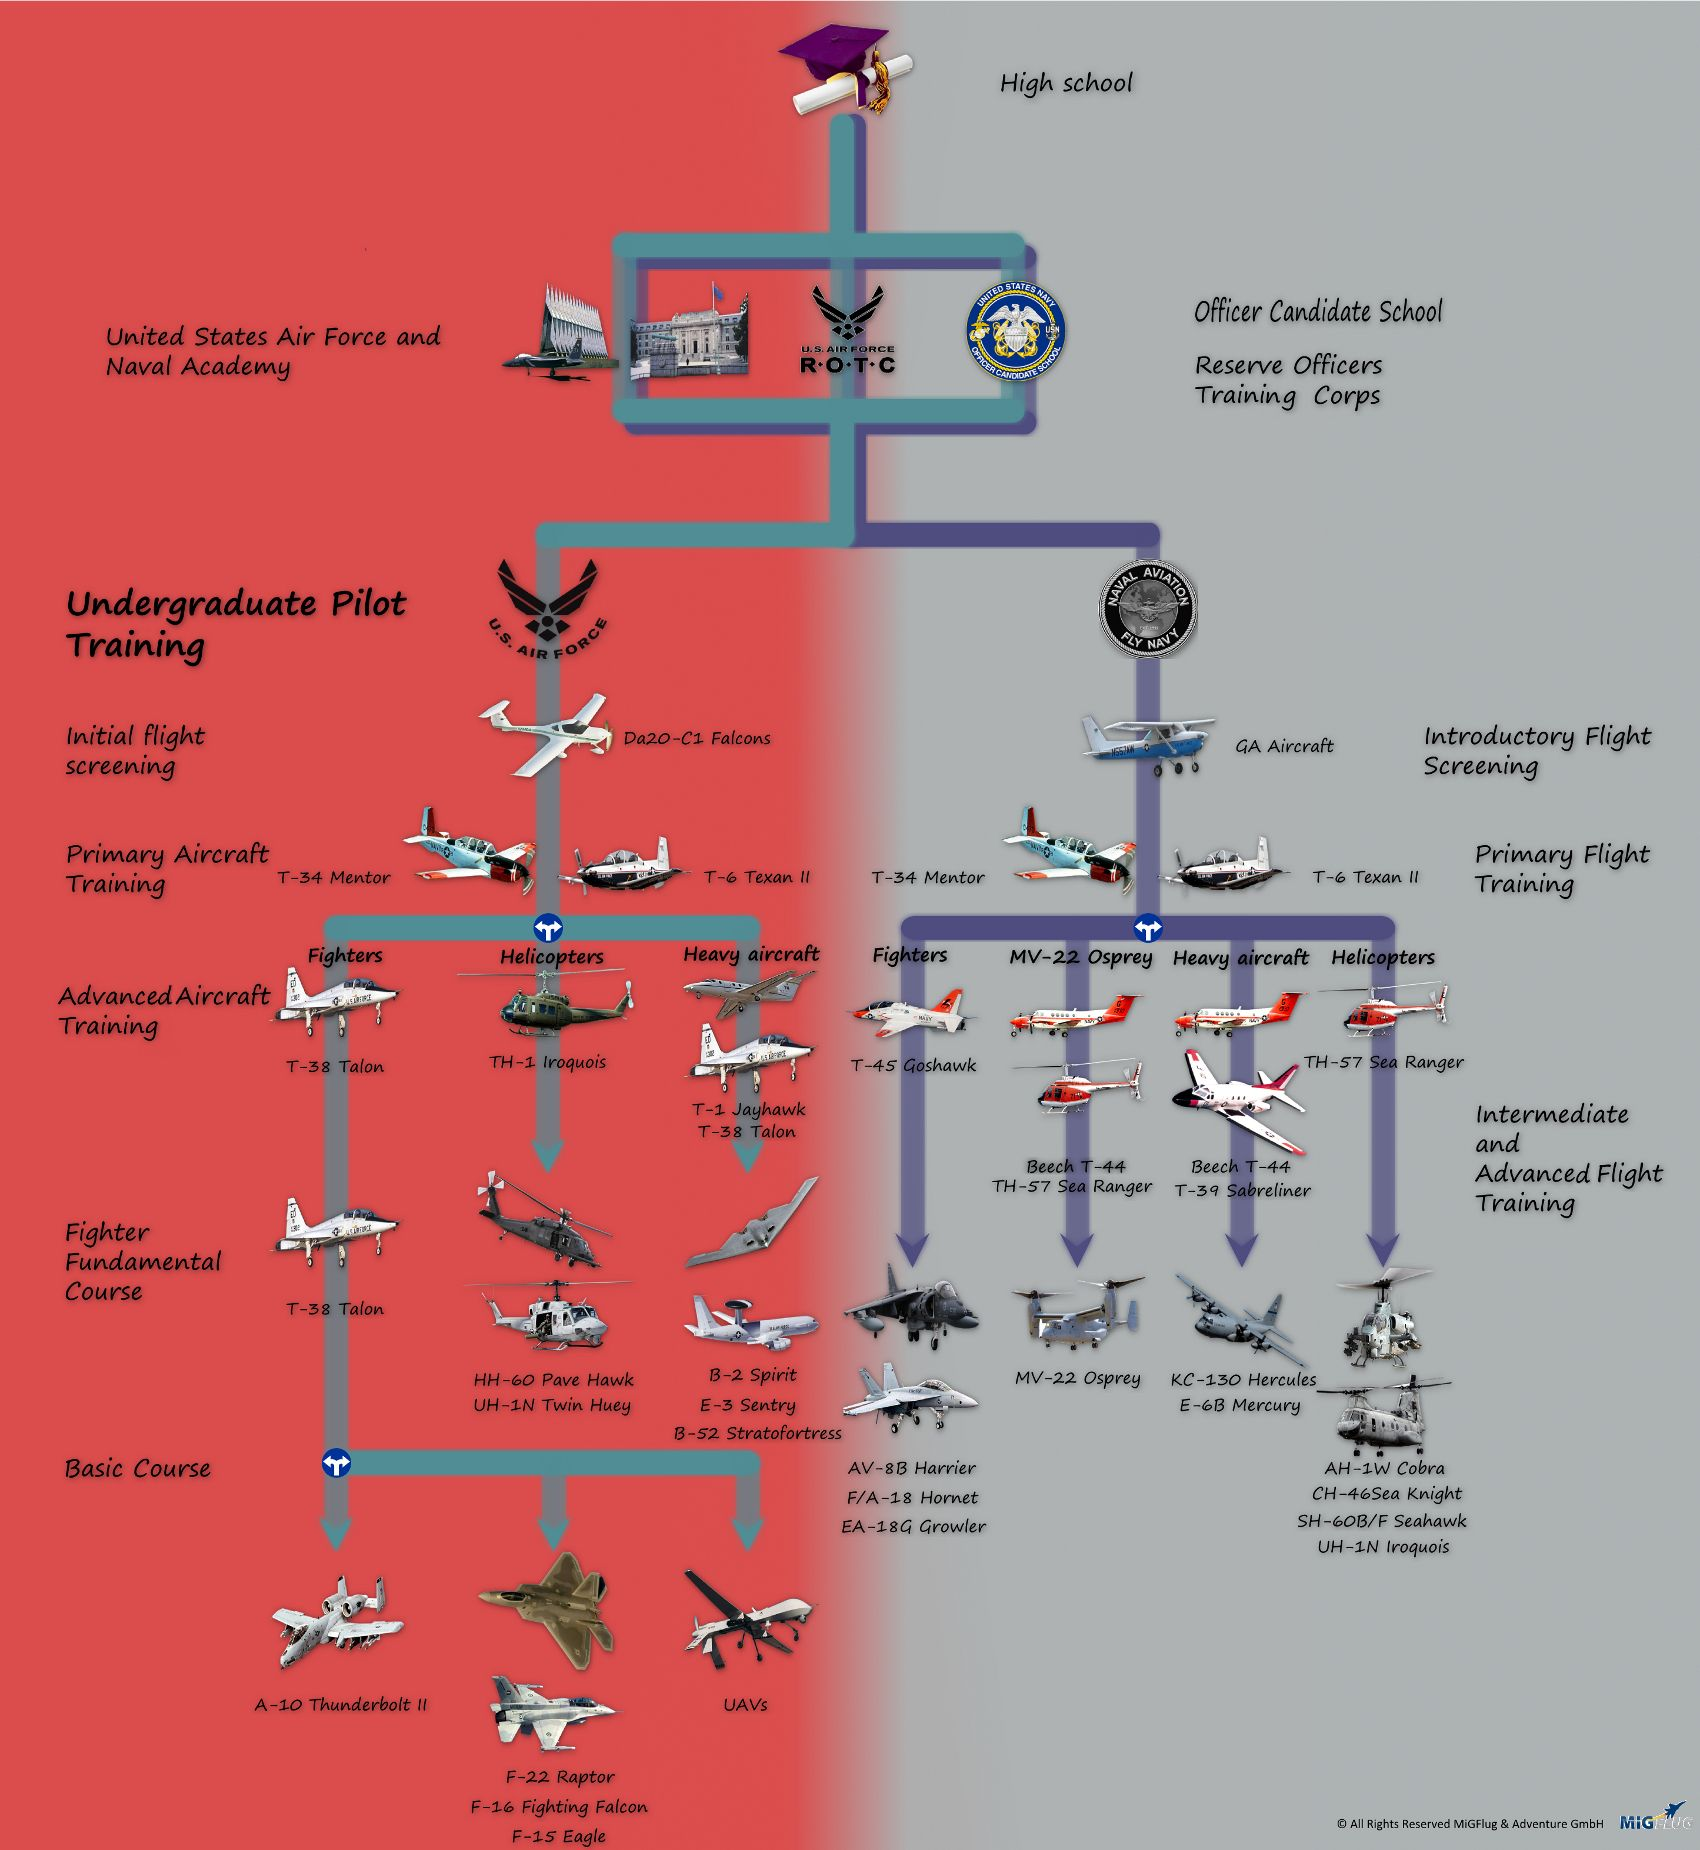 The infographic shows the three ways to a fighter